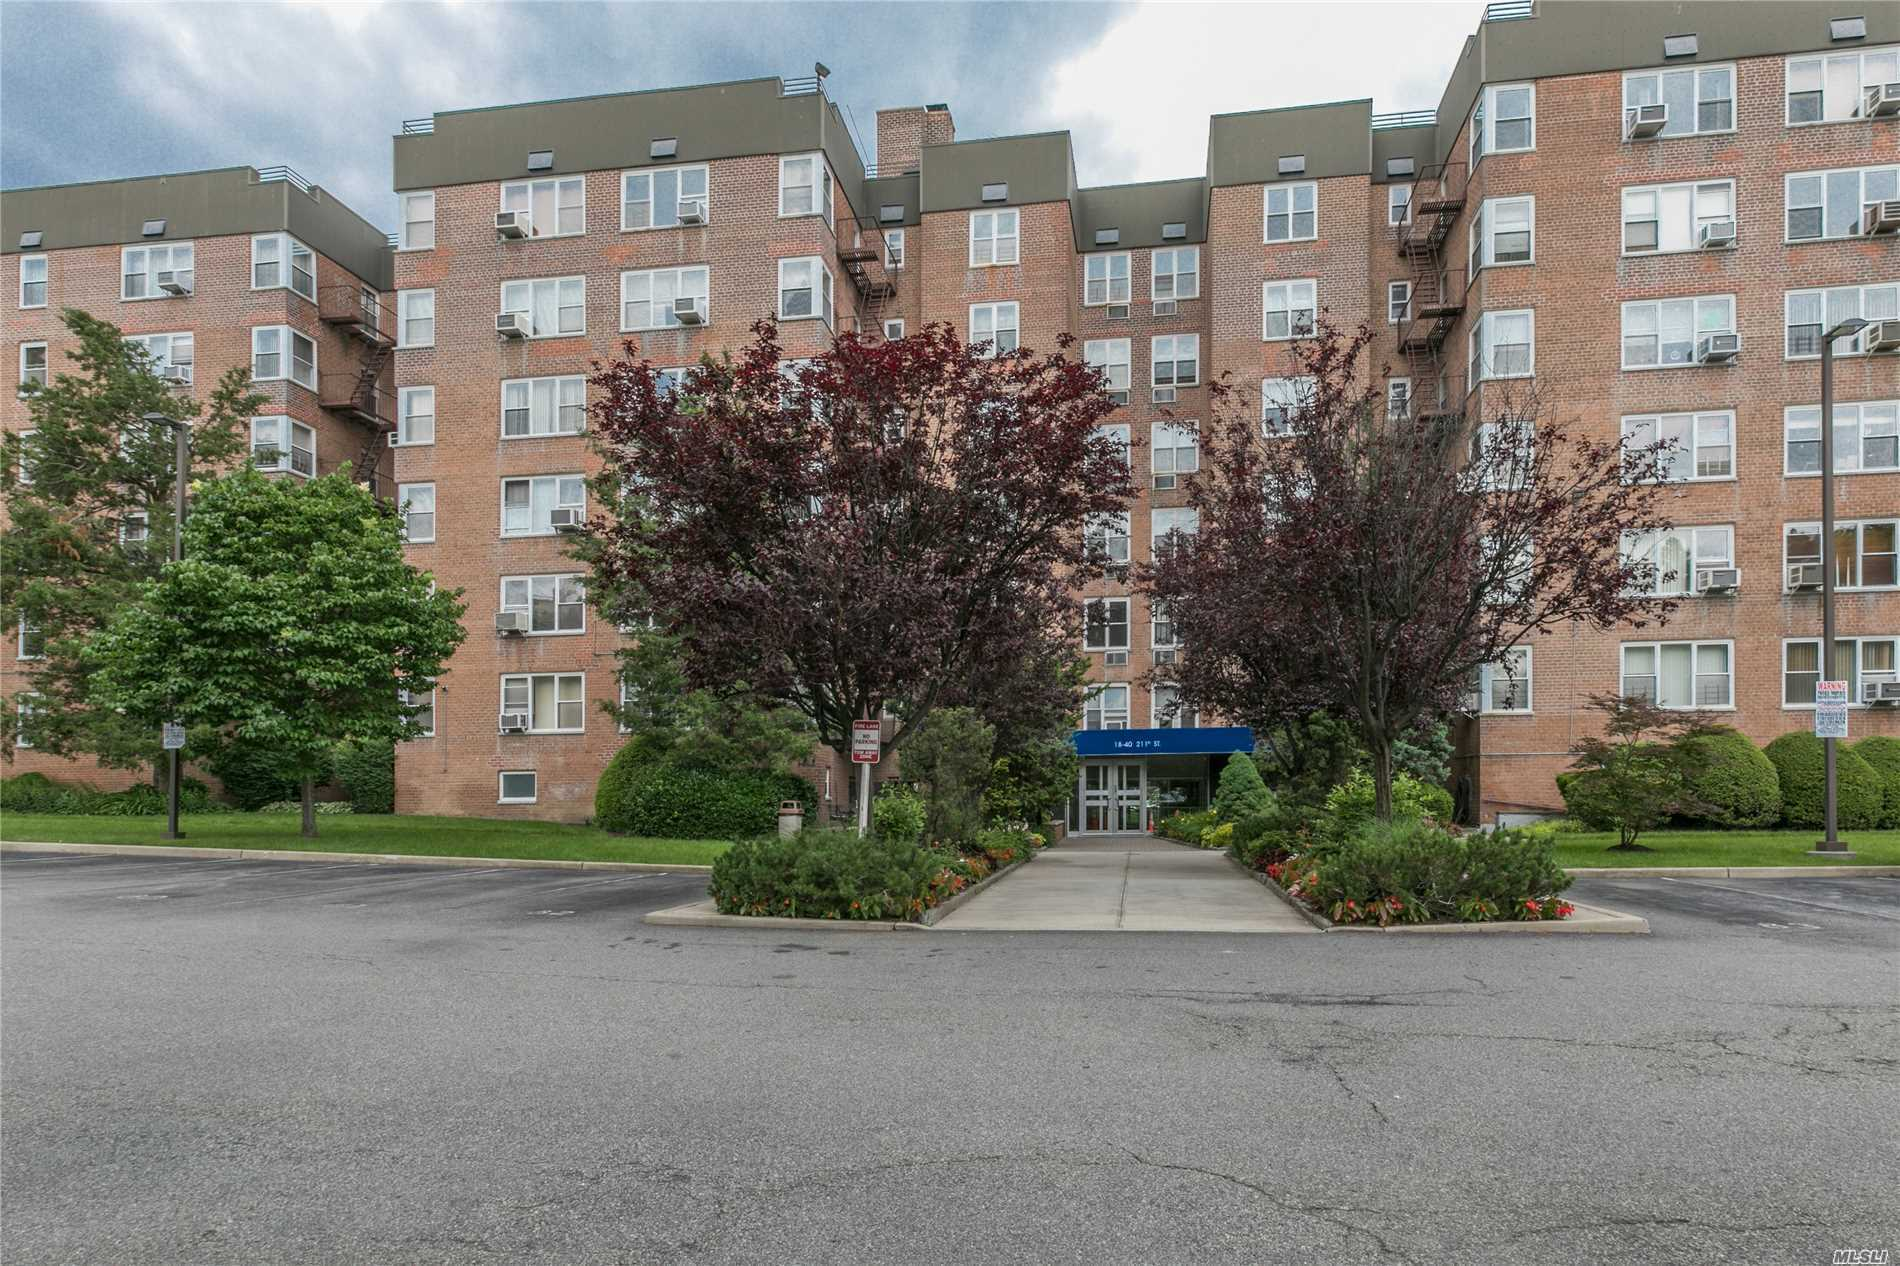 Spacious 2 Bedroom Co-Op Located In Bayside. This Bay Terrace Unit Offers An Eat-In-Kitchen, Dining Area, Huge Living Room, Bath Entrance Foyer, Oversized Closets. Endless Possibilities To Renovate To Your Own Style. Maintenance Includes Real Estate Taxes, Gas, Heat, Water And Electric! Prime Location With Easy Access To Many Express Buses To Nyc, Local Bus To Lirr, Schools, Library, Shopping And Restaurants. Community Pool And Tennis Club Nearby Available Through Membership.